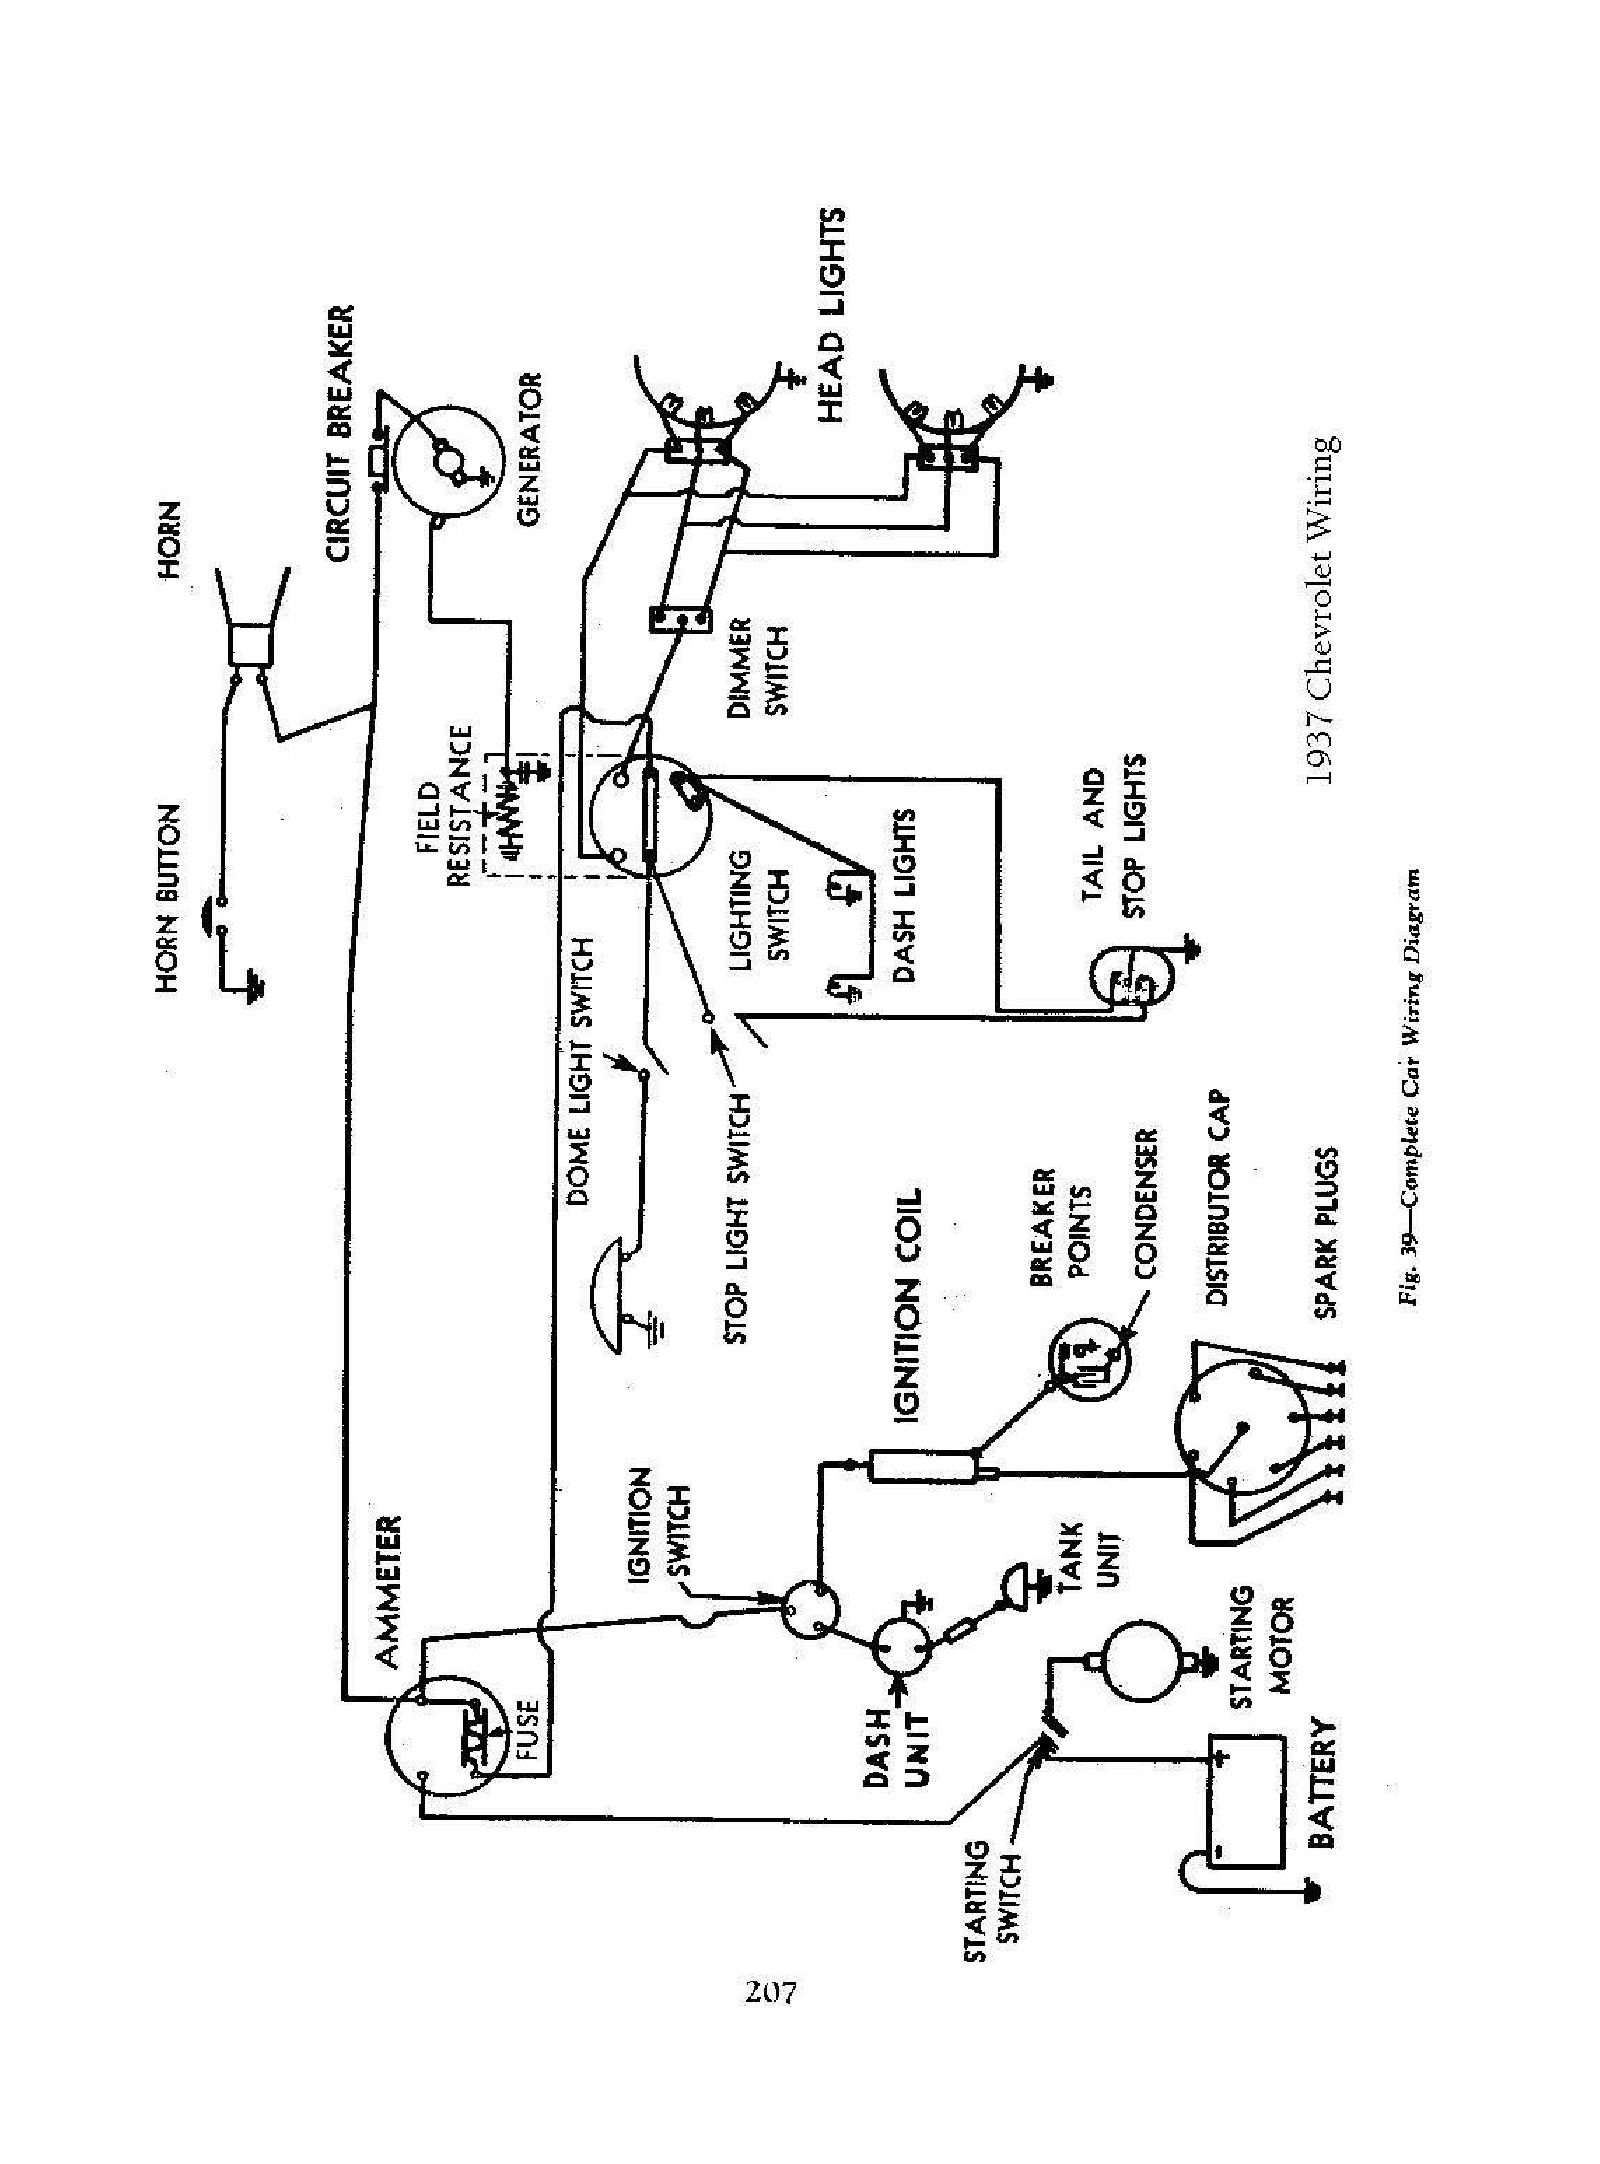 Chevy Wiring diagrams on 1946 ford wiring diagram, 1948 ford wiring diagram, 1950 ford wiring diagram, 1937 ford wiring diagram, 47 ford wiring diagram, 1953 ford wiring diagram, 1930 ford wiring diagram, 1956 ford wiring diagram, 1939 ford wiring diagram, 1926 ford wiring diagram, 1957 ford wiring diagram, 1955 ford wiring diagram, 1935 ford wiring diagram, 1949 ford wiring diagram, 1940 ford wiring diagram, 1951 ford wiring diagram, 1929 ford wiring diagram, 1954 ford wiring diagram, 1936 ford wiring diagram, 1947 ford carburetor,